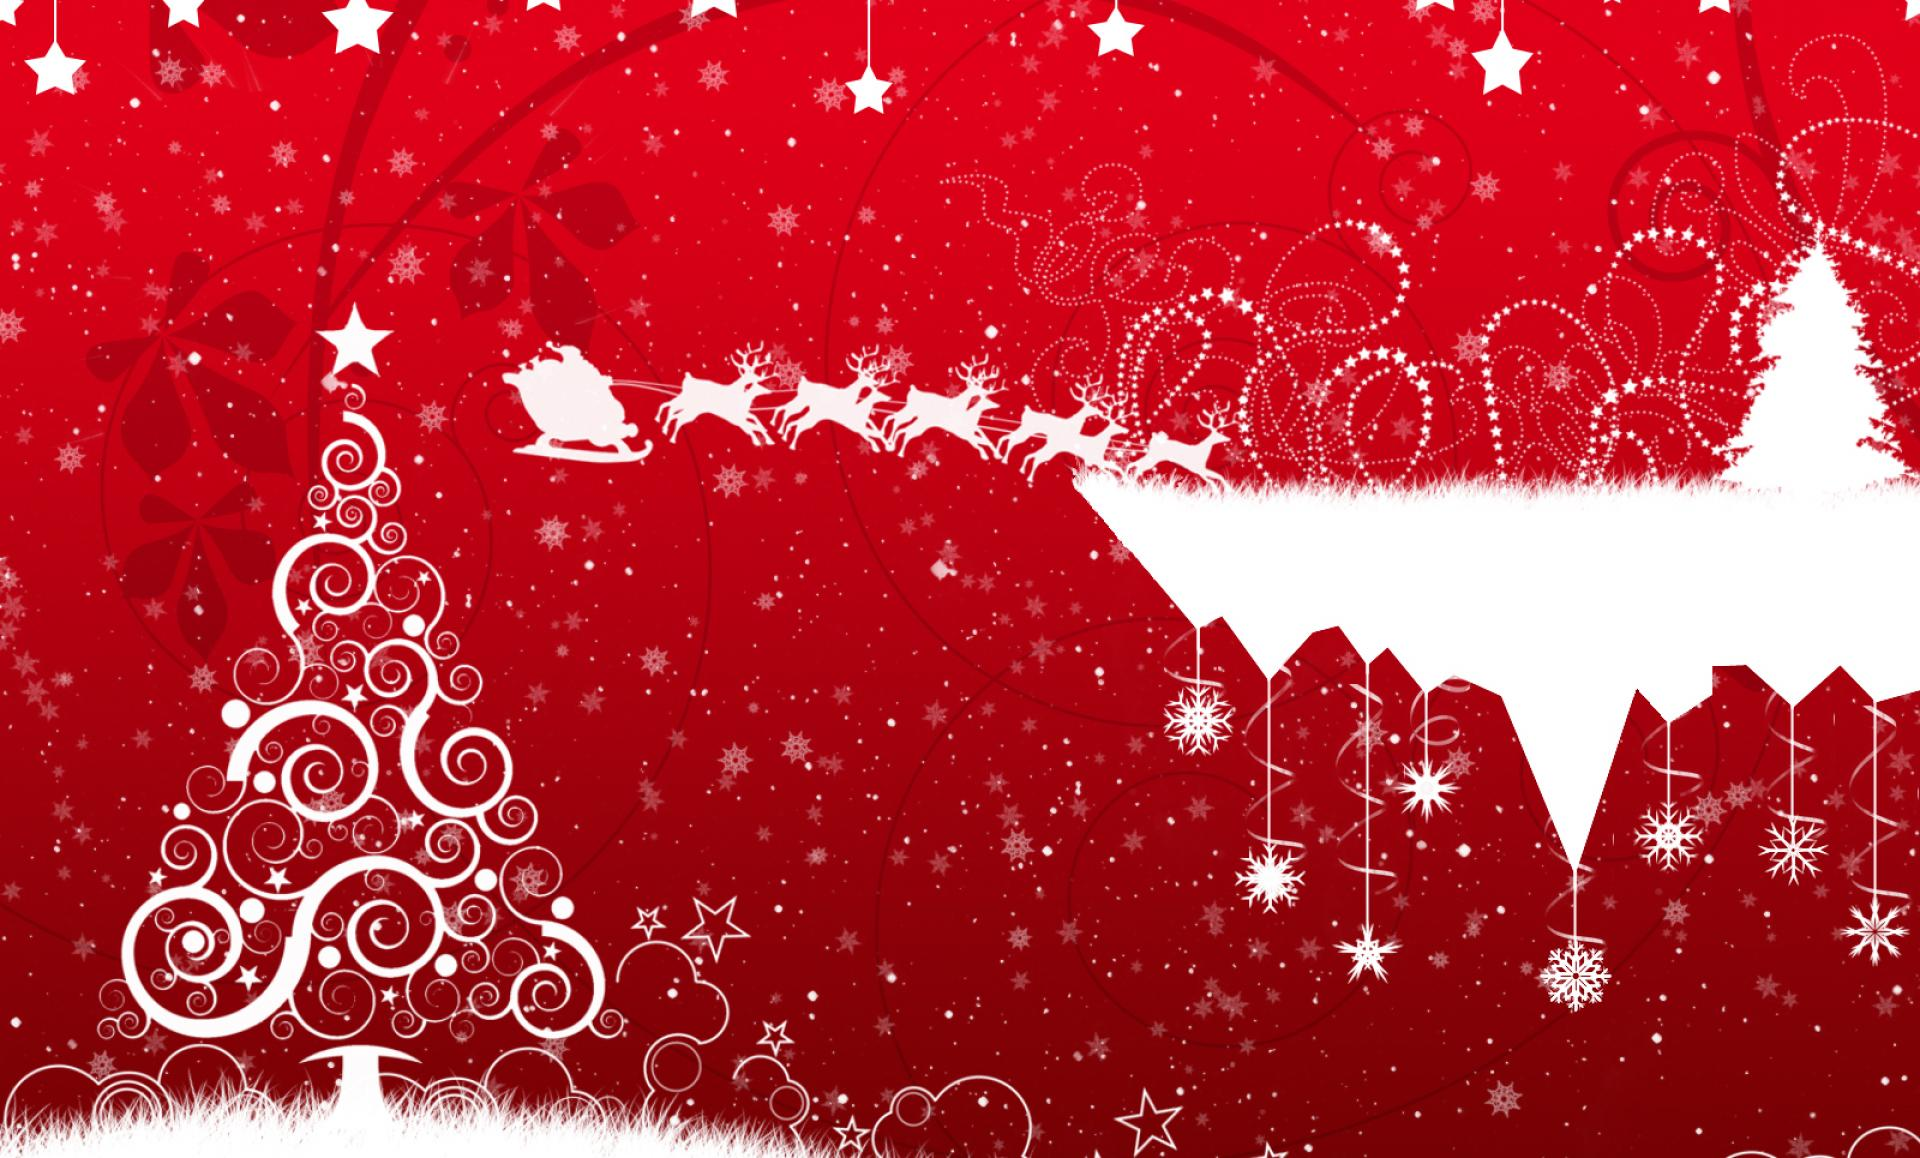 wallpaper 15 merry christmas wallpaper 16 merry christmas wallpaper 17